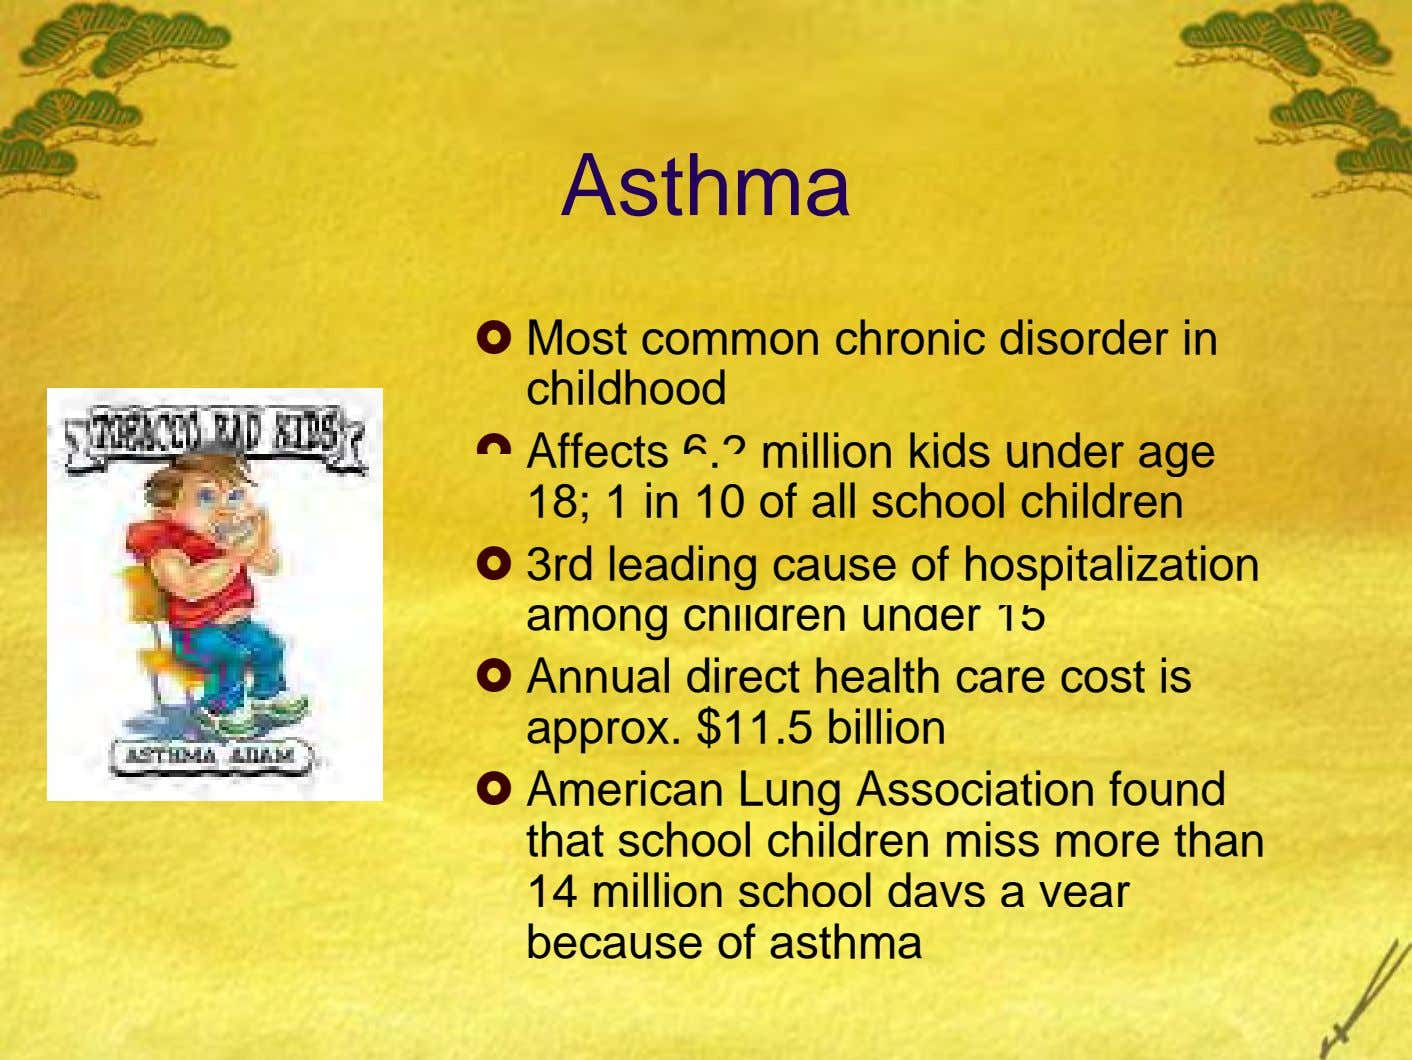 Asthma Most common chronic disorder in childhood Affects 6.2 million kids under age 18; 1 in